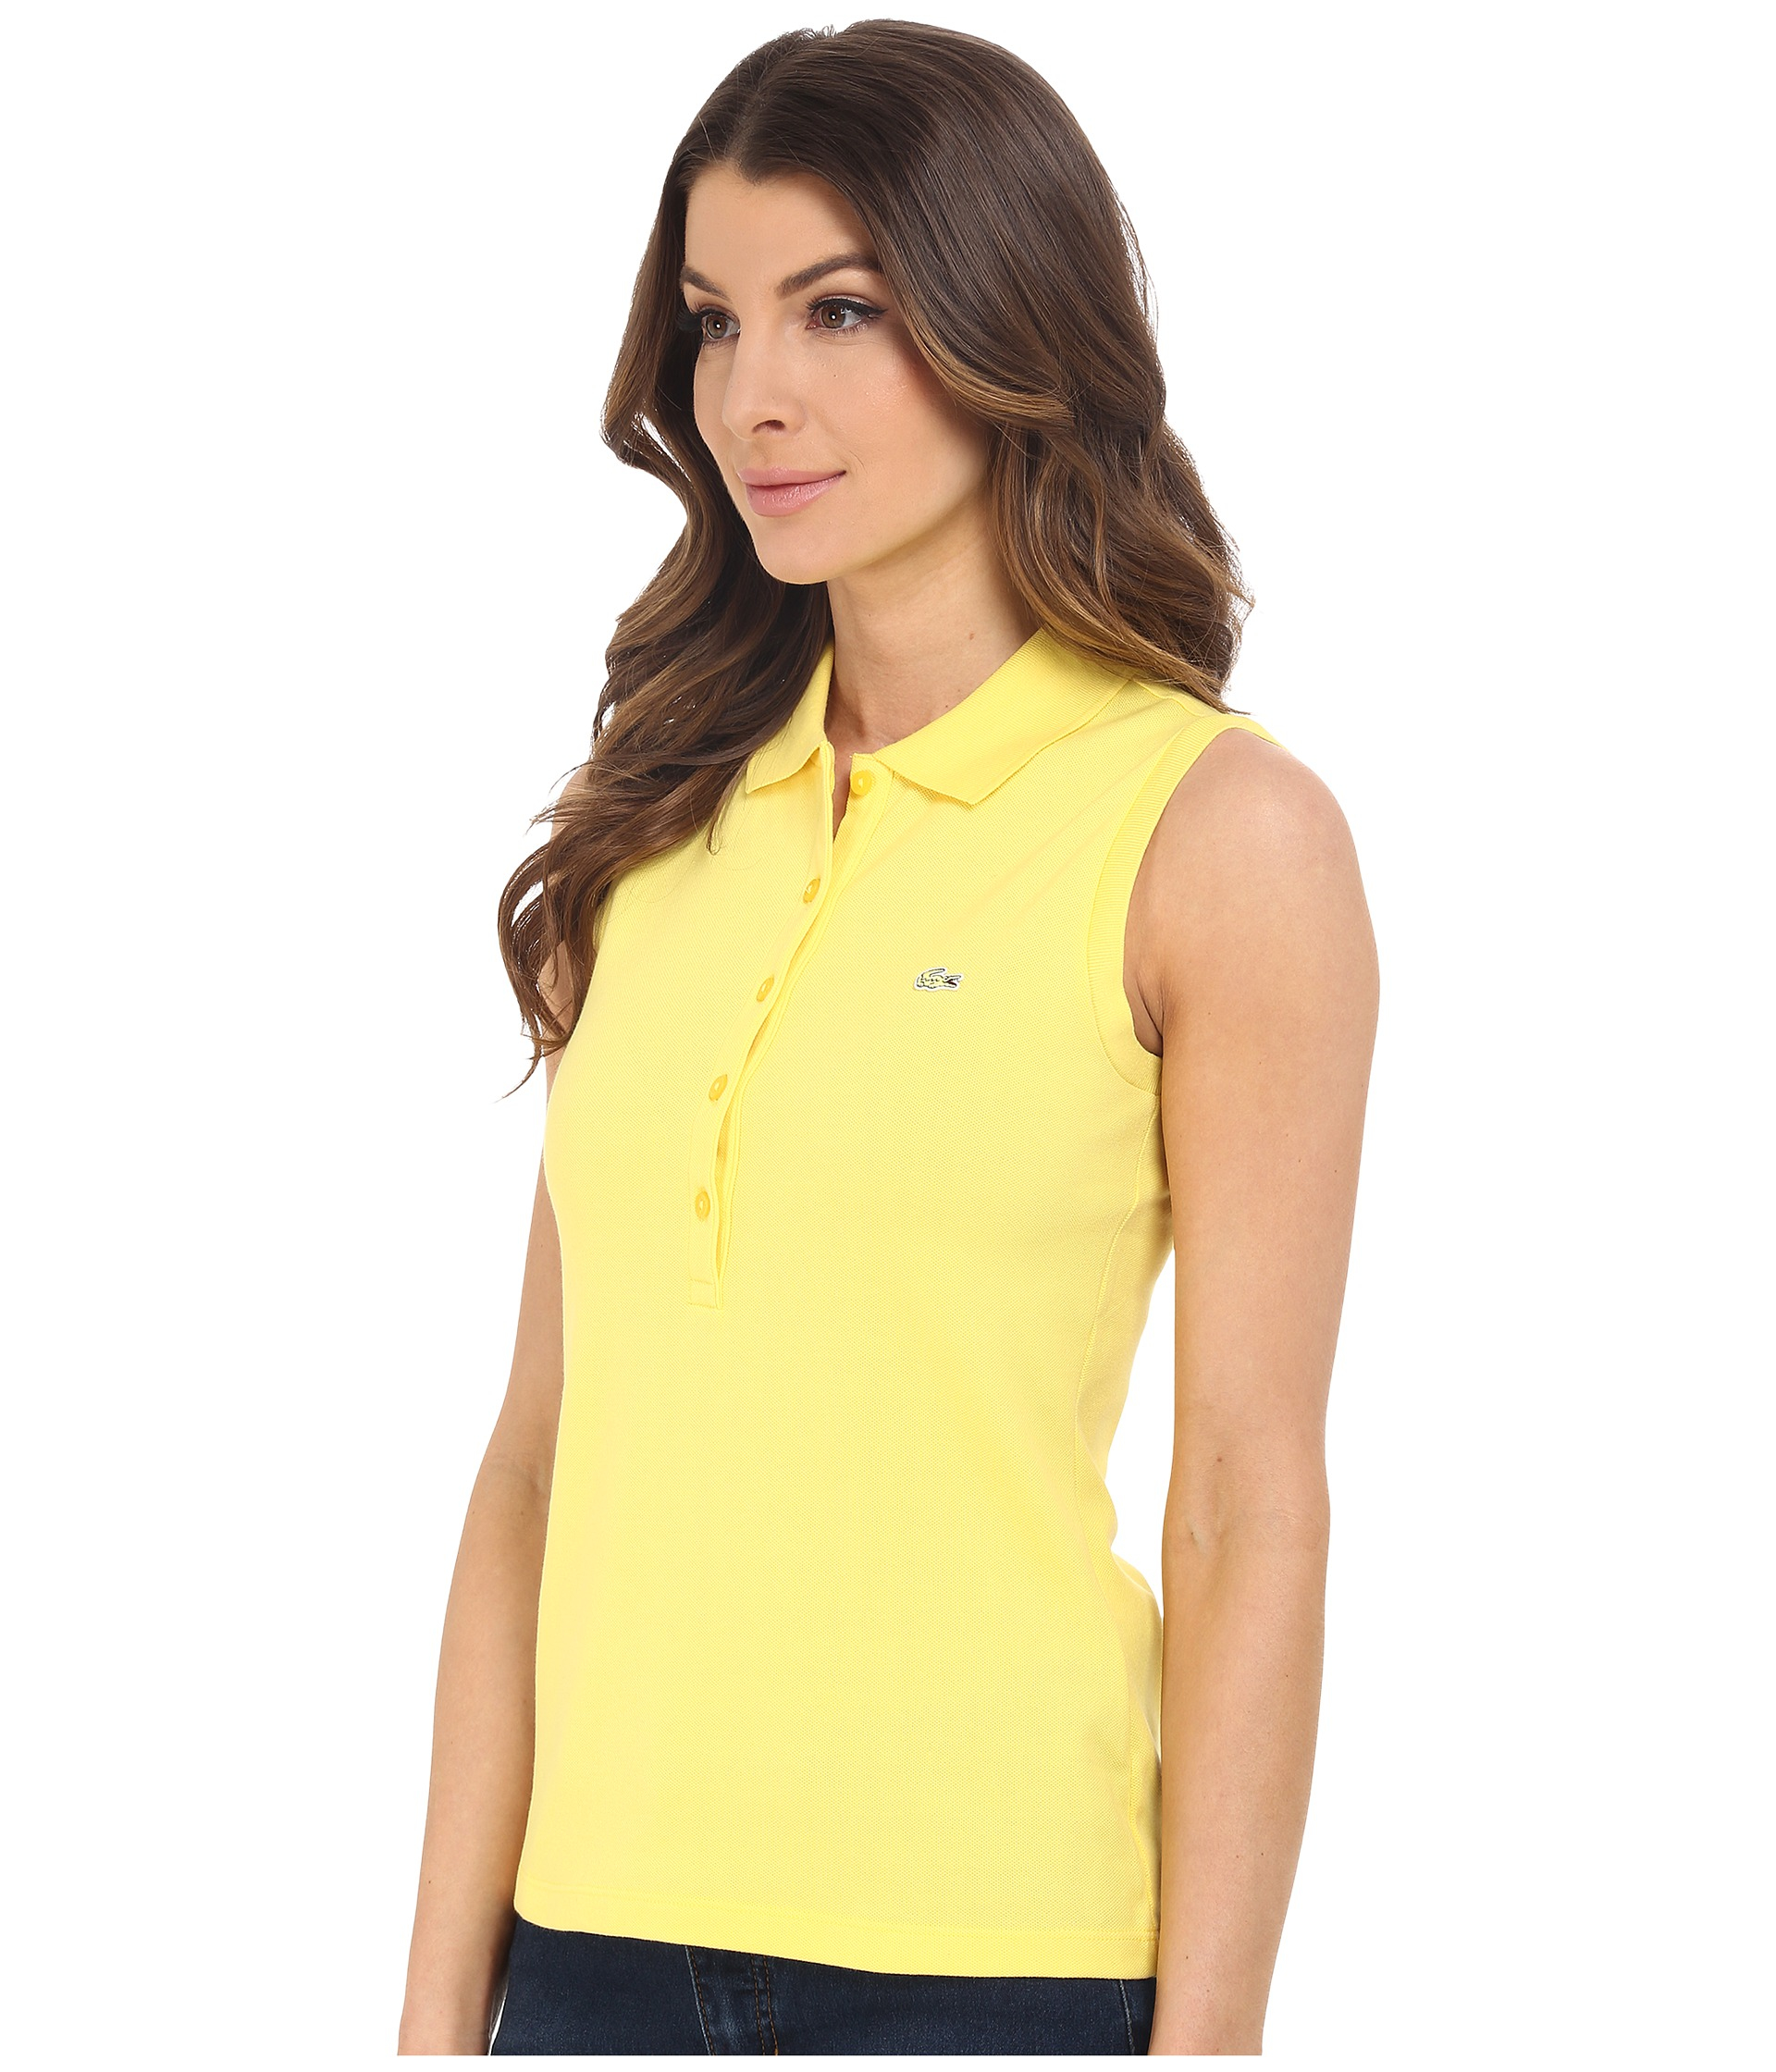 e1c12f6cbd3030 Lyst - Lacoste Sleeveless Slim Fit Stretch Pique Polo Shirt in Yellow